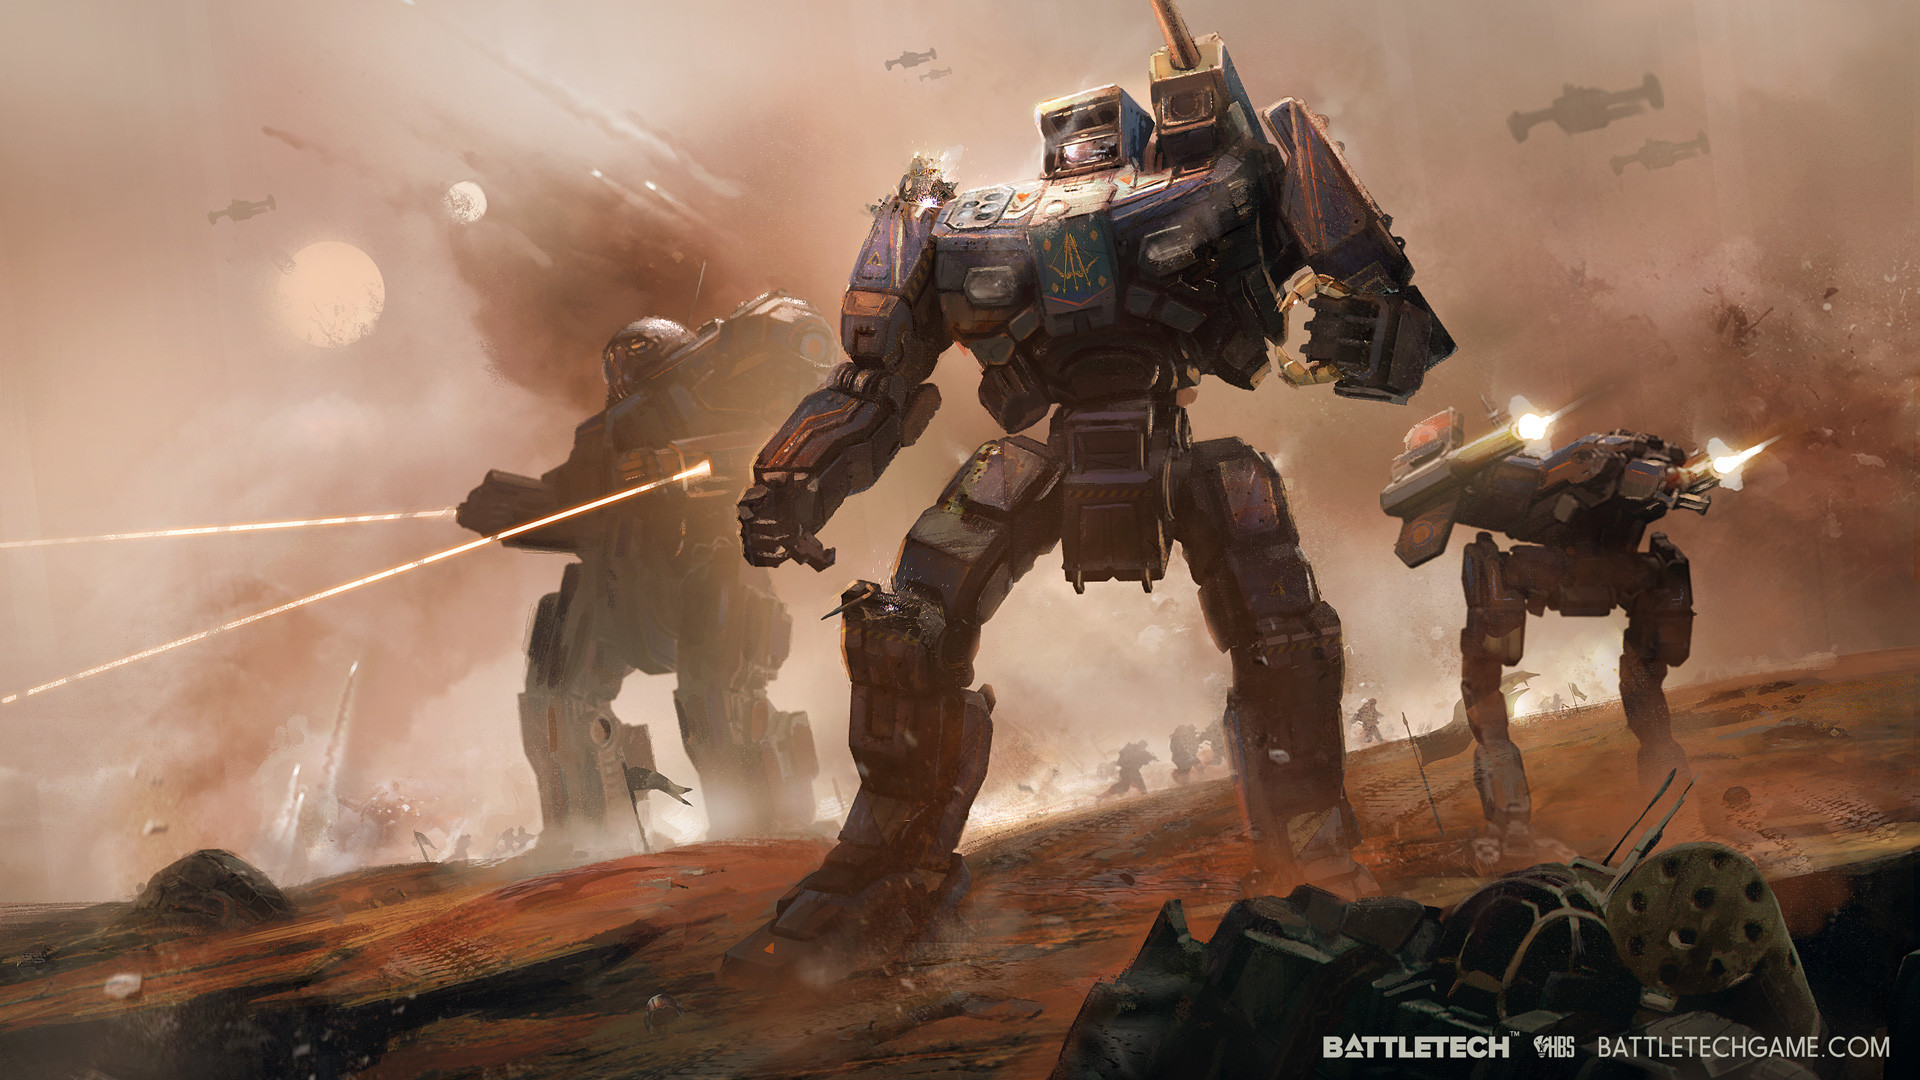 Jordan Weisman, the creator of BattleTech and MechWarrior, is back with the  first turn-based BattleTech game for PC in over two decades.